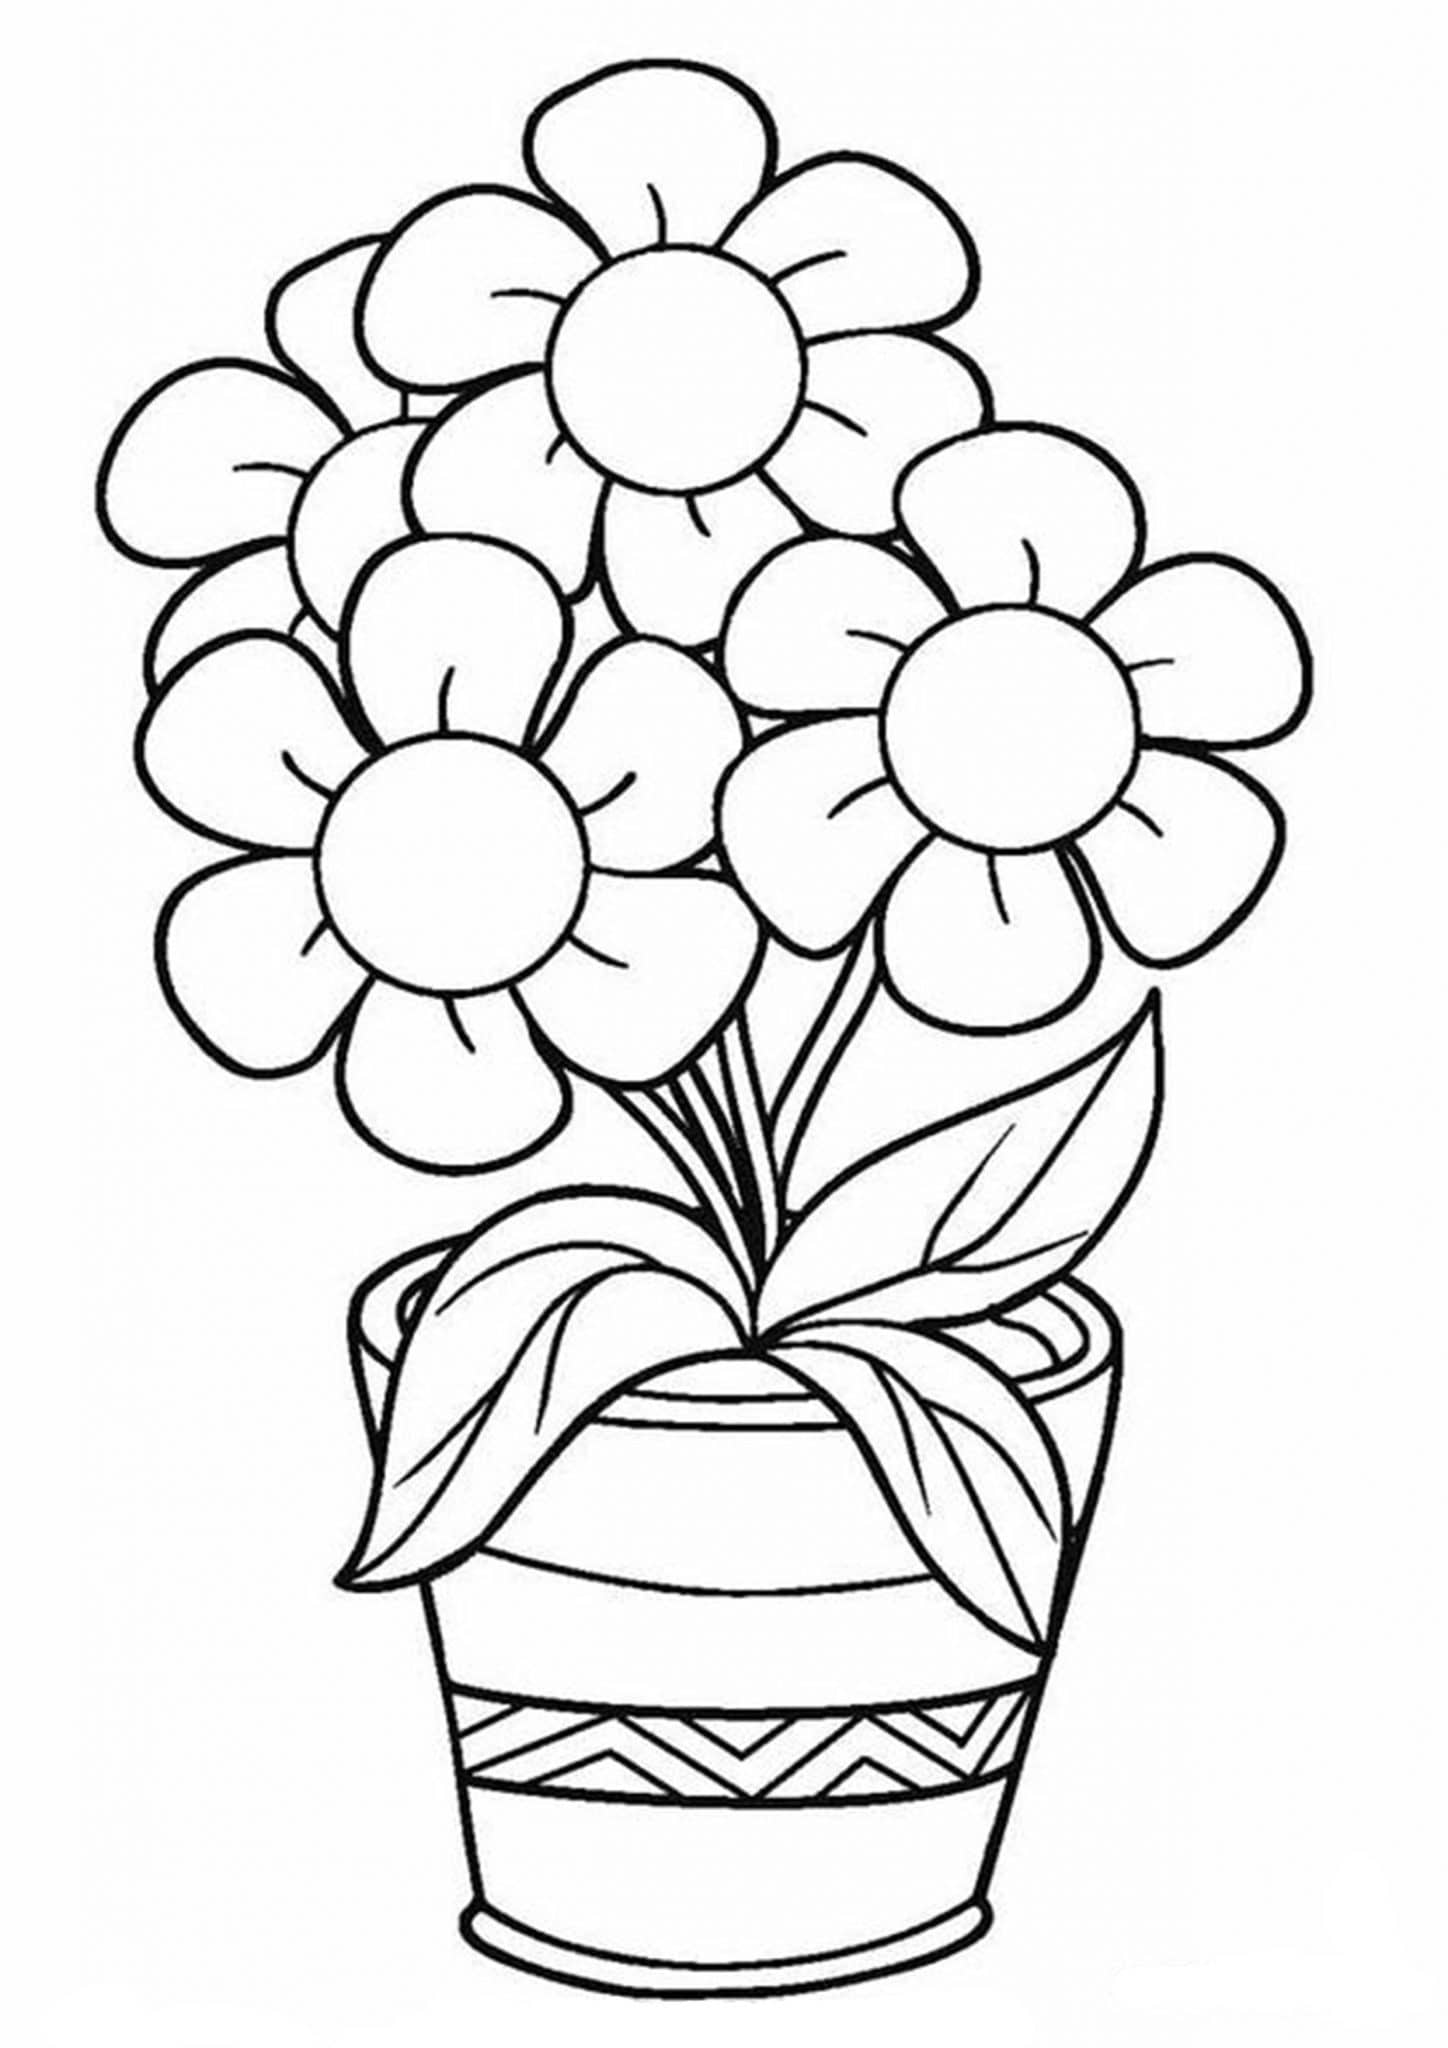 coloring pages of flowers free printable flower coloring pages for kids cool2bkids pages coloring flowers of